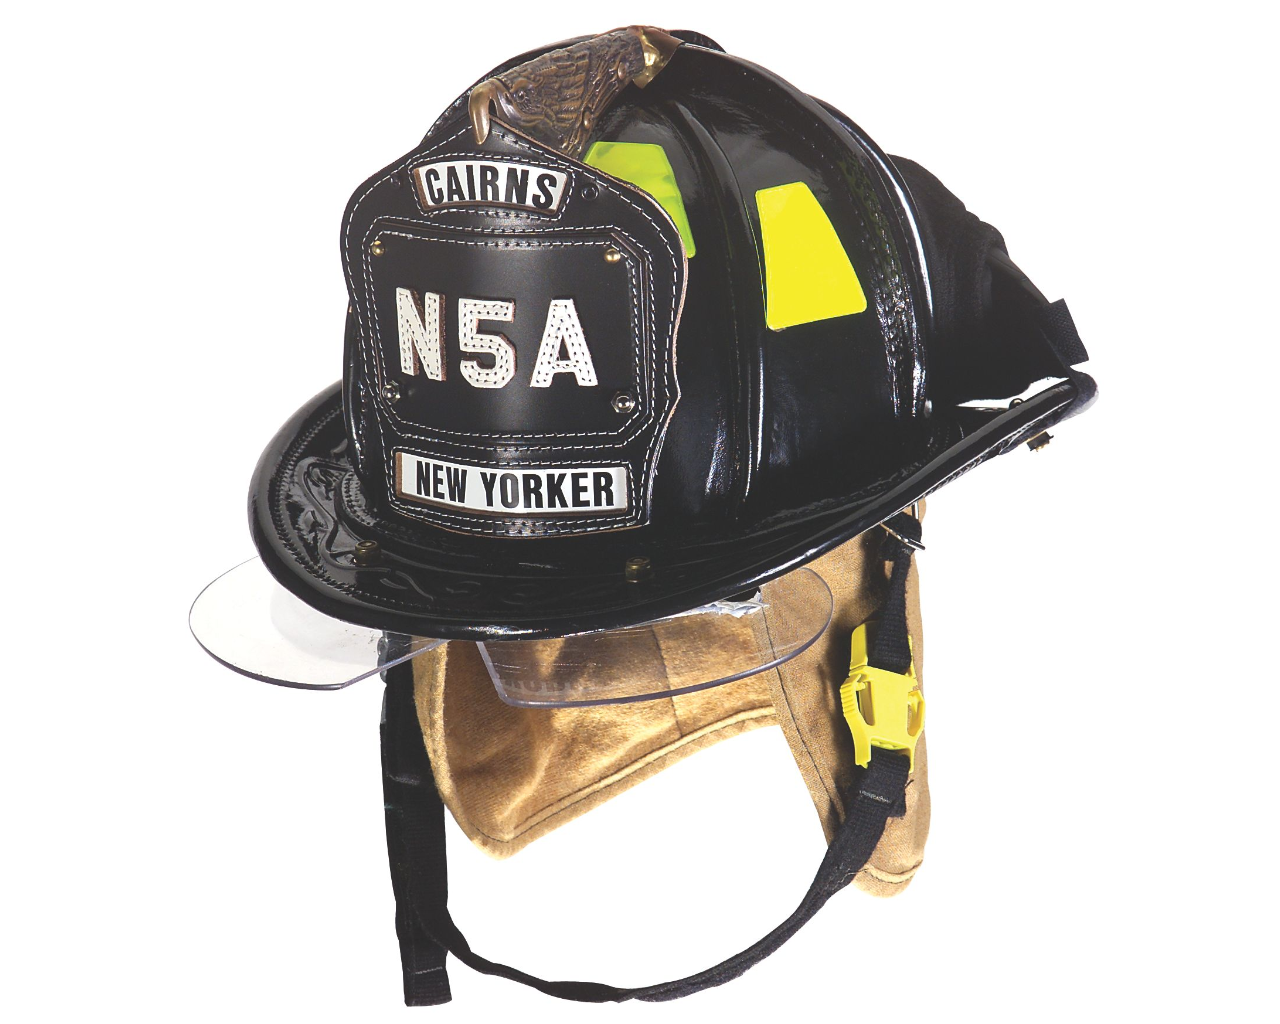 Cairns® N5A New Yorker™ Leather Fire Helmet with bourkes-